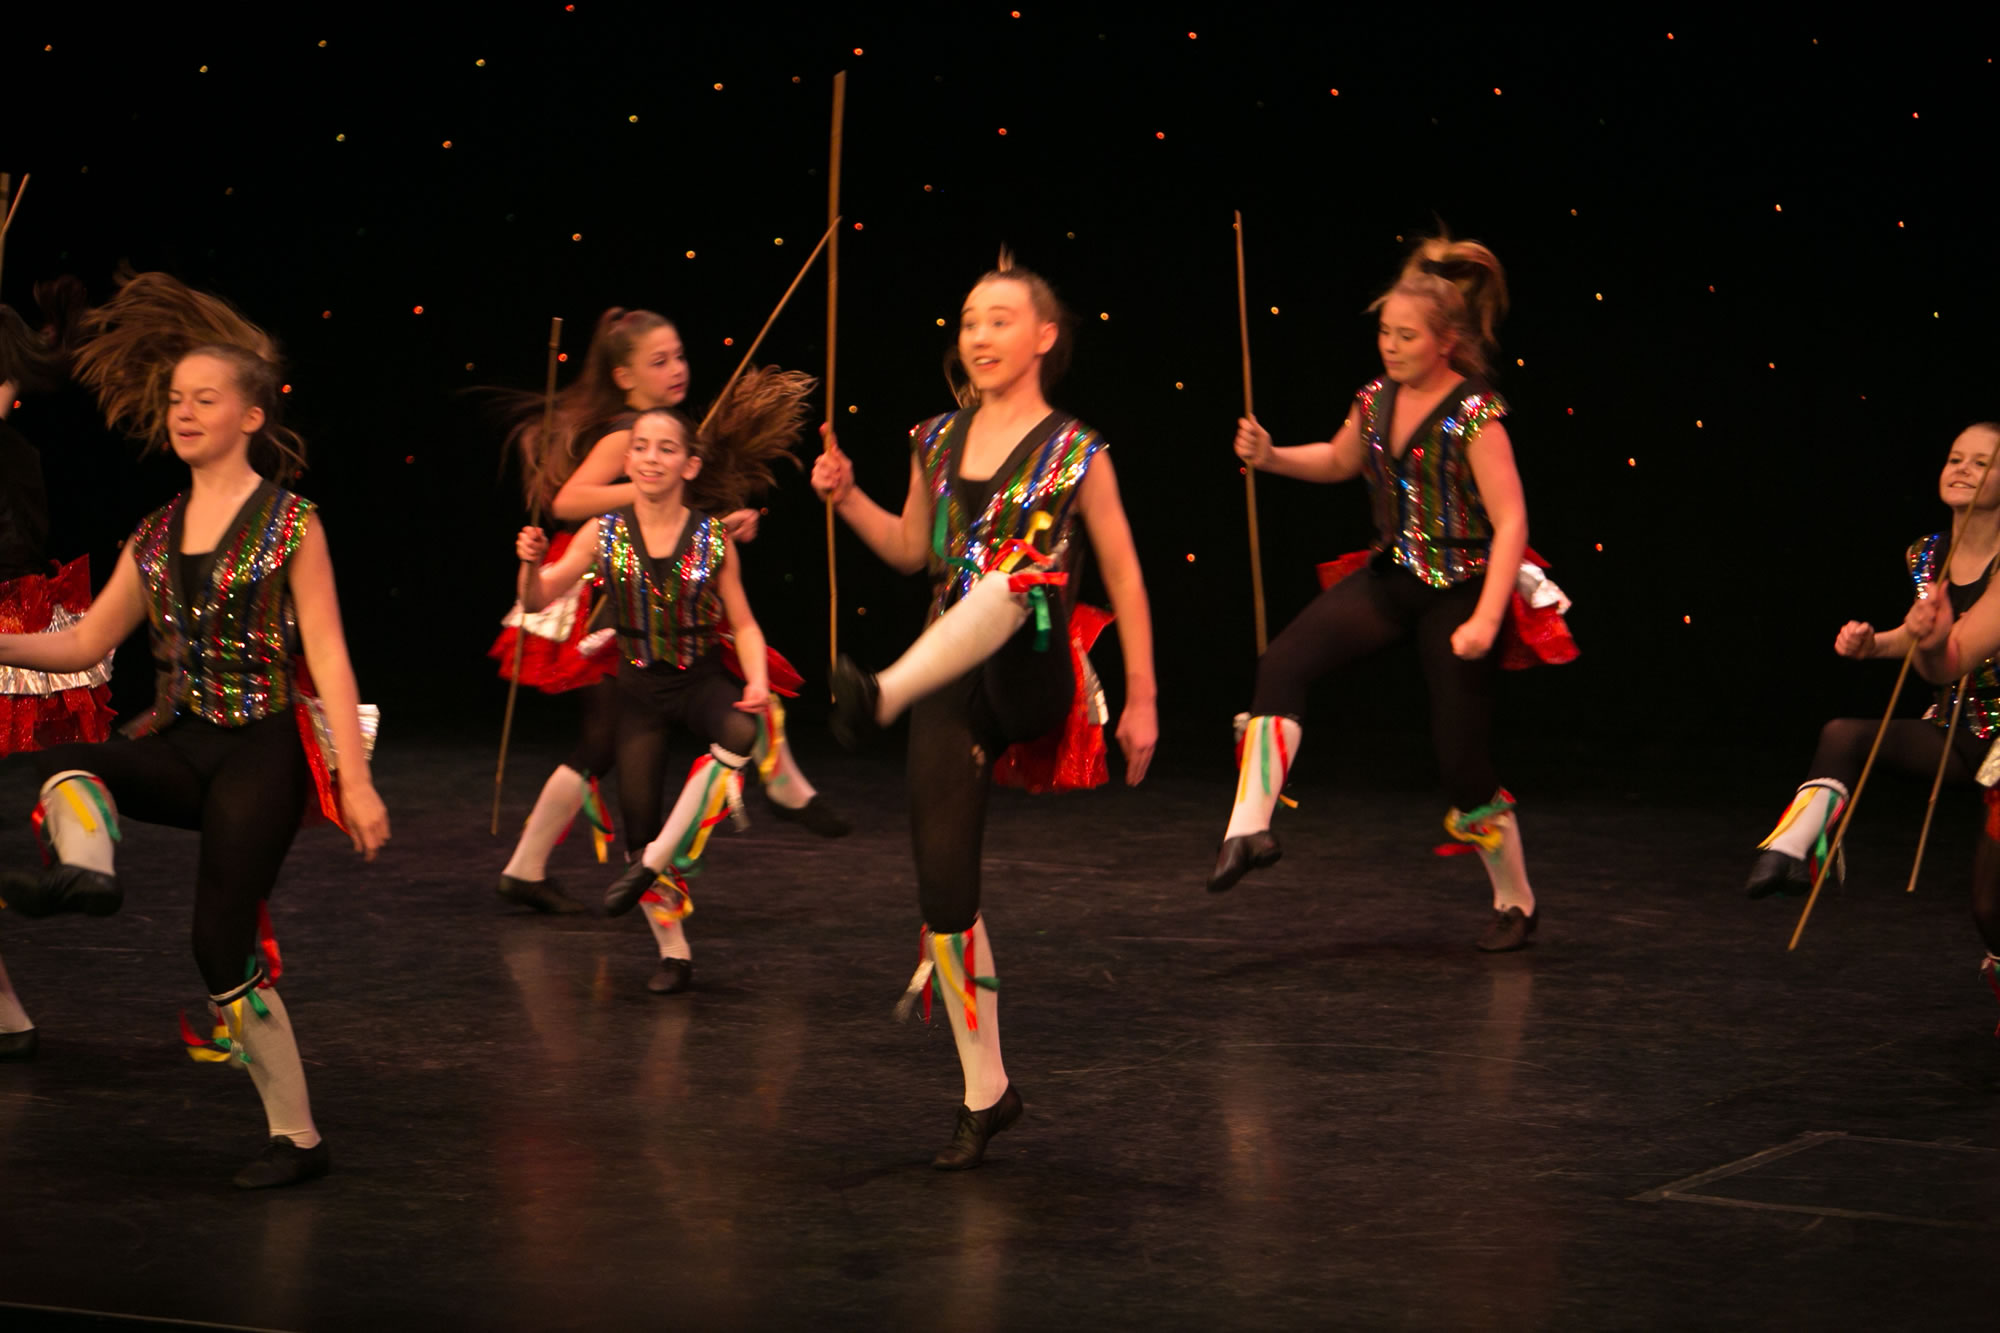 Hitchin_School_of_Dance_Show_2019-SM1_2670.jpg